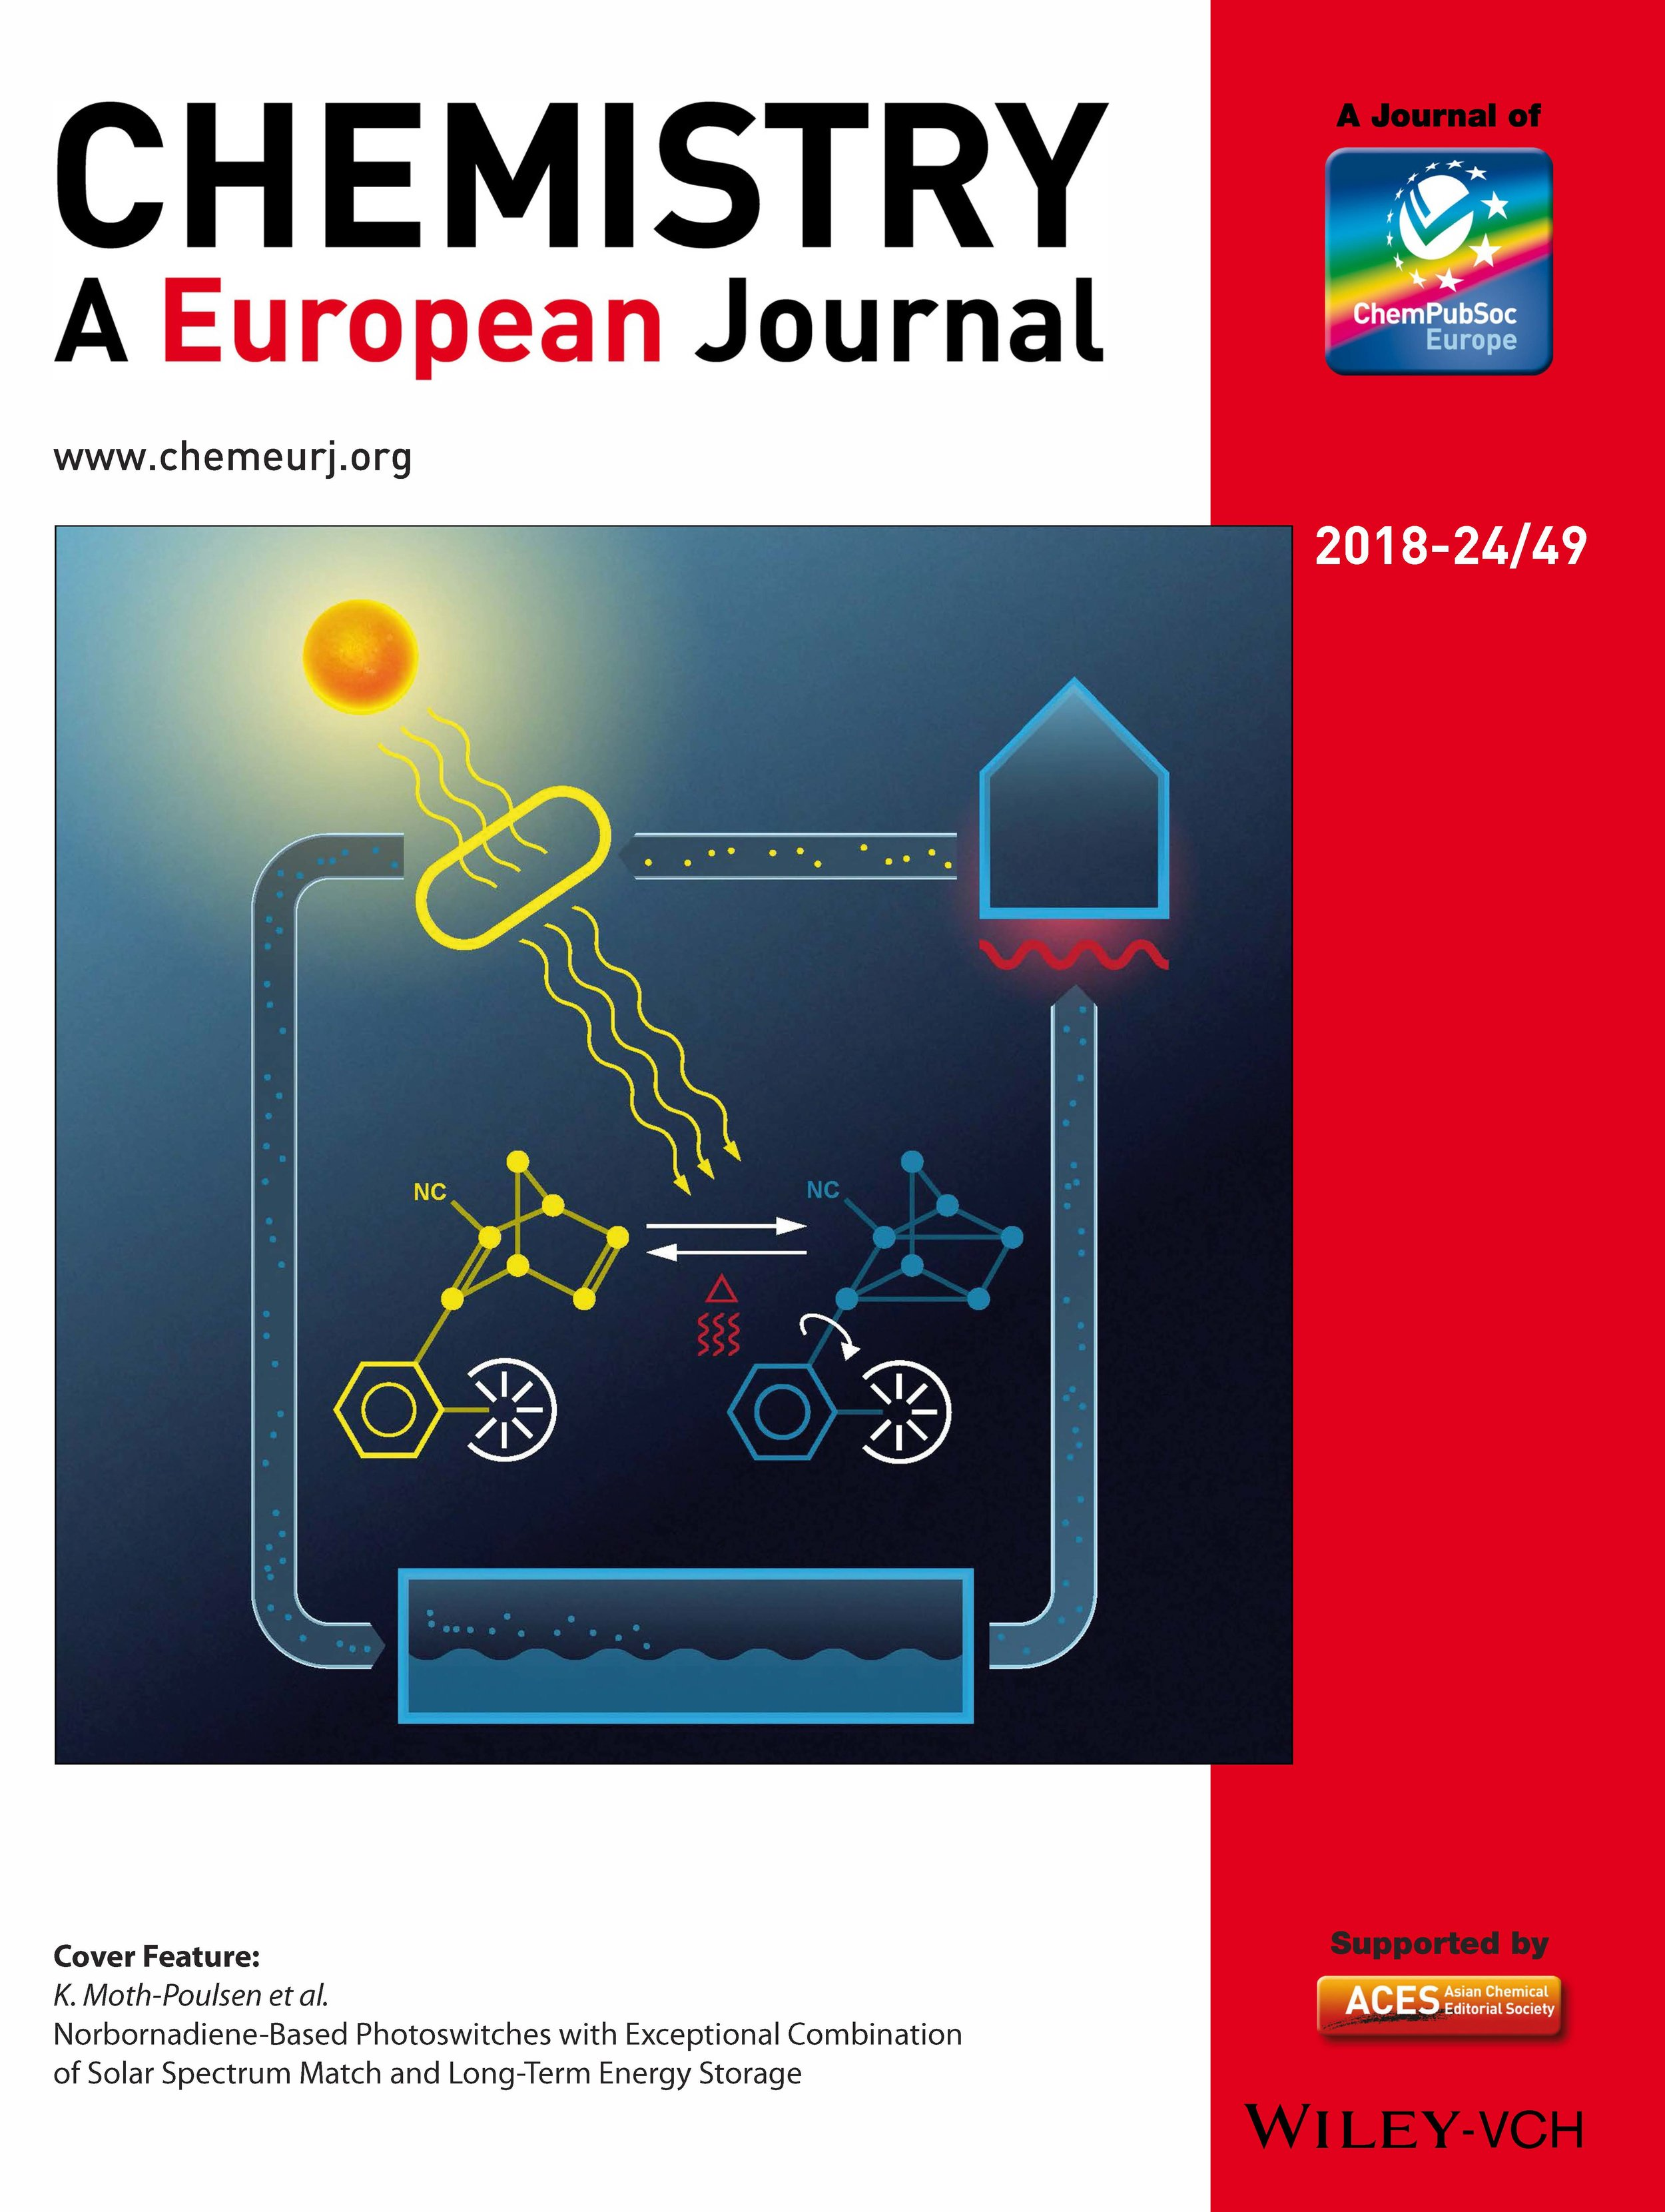 Jevric_et_al-2018-Chemistry_-_A_European_Journal (2).jpg